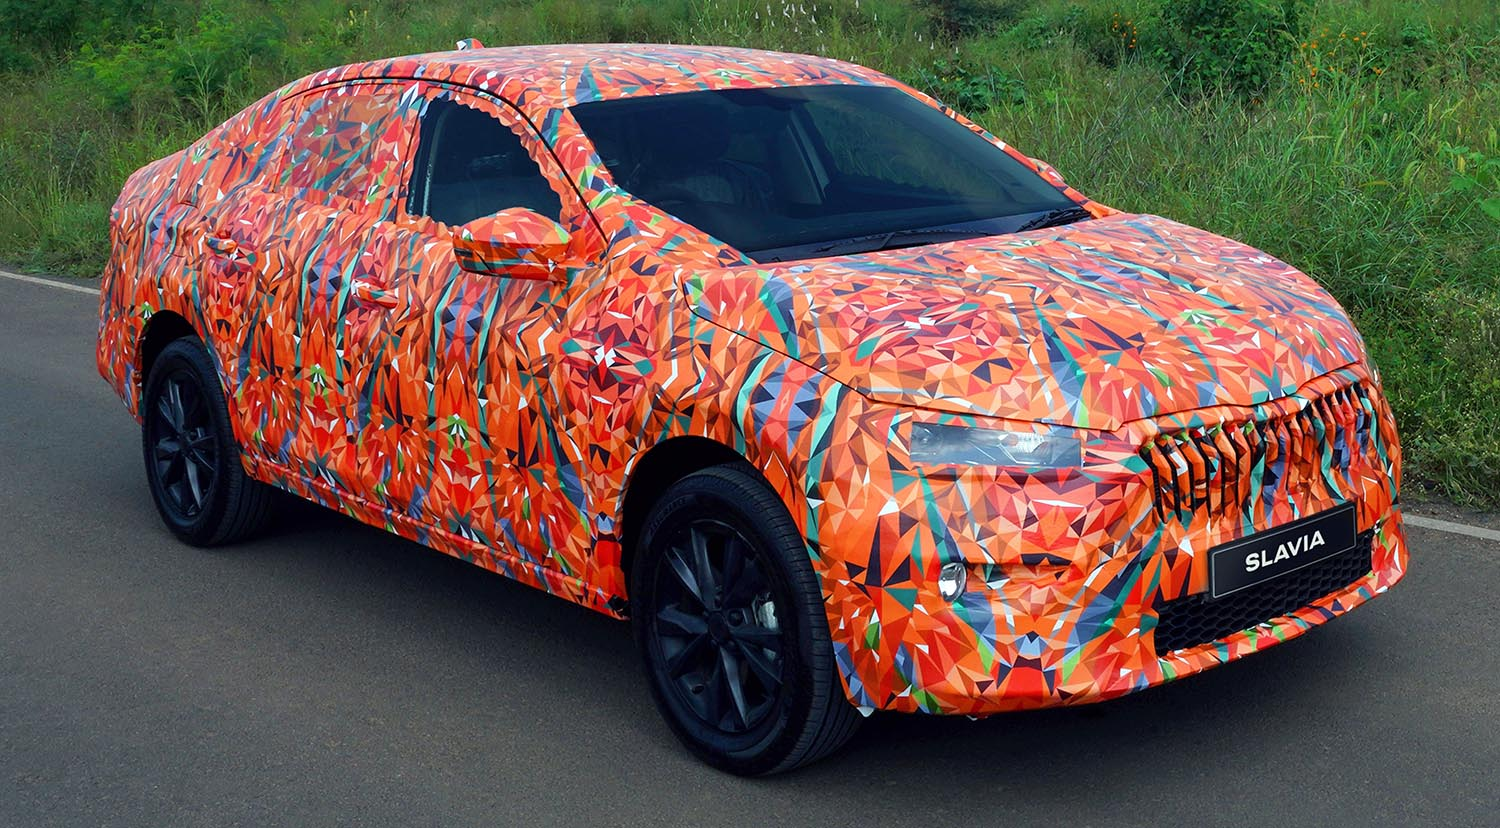 Camouflage Wrap For New ŠKODA SLAVIA Is The Result Of A Design Contest